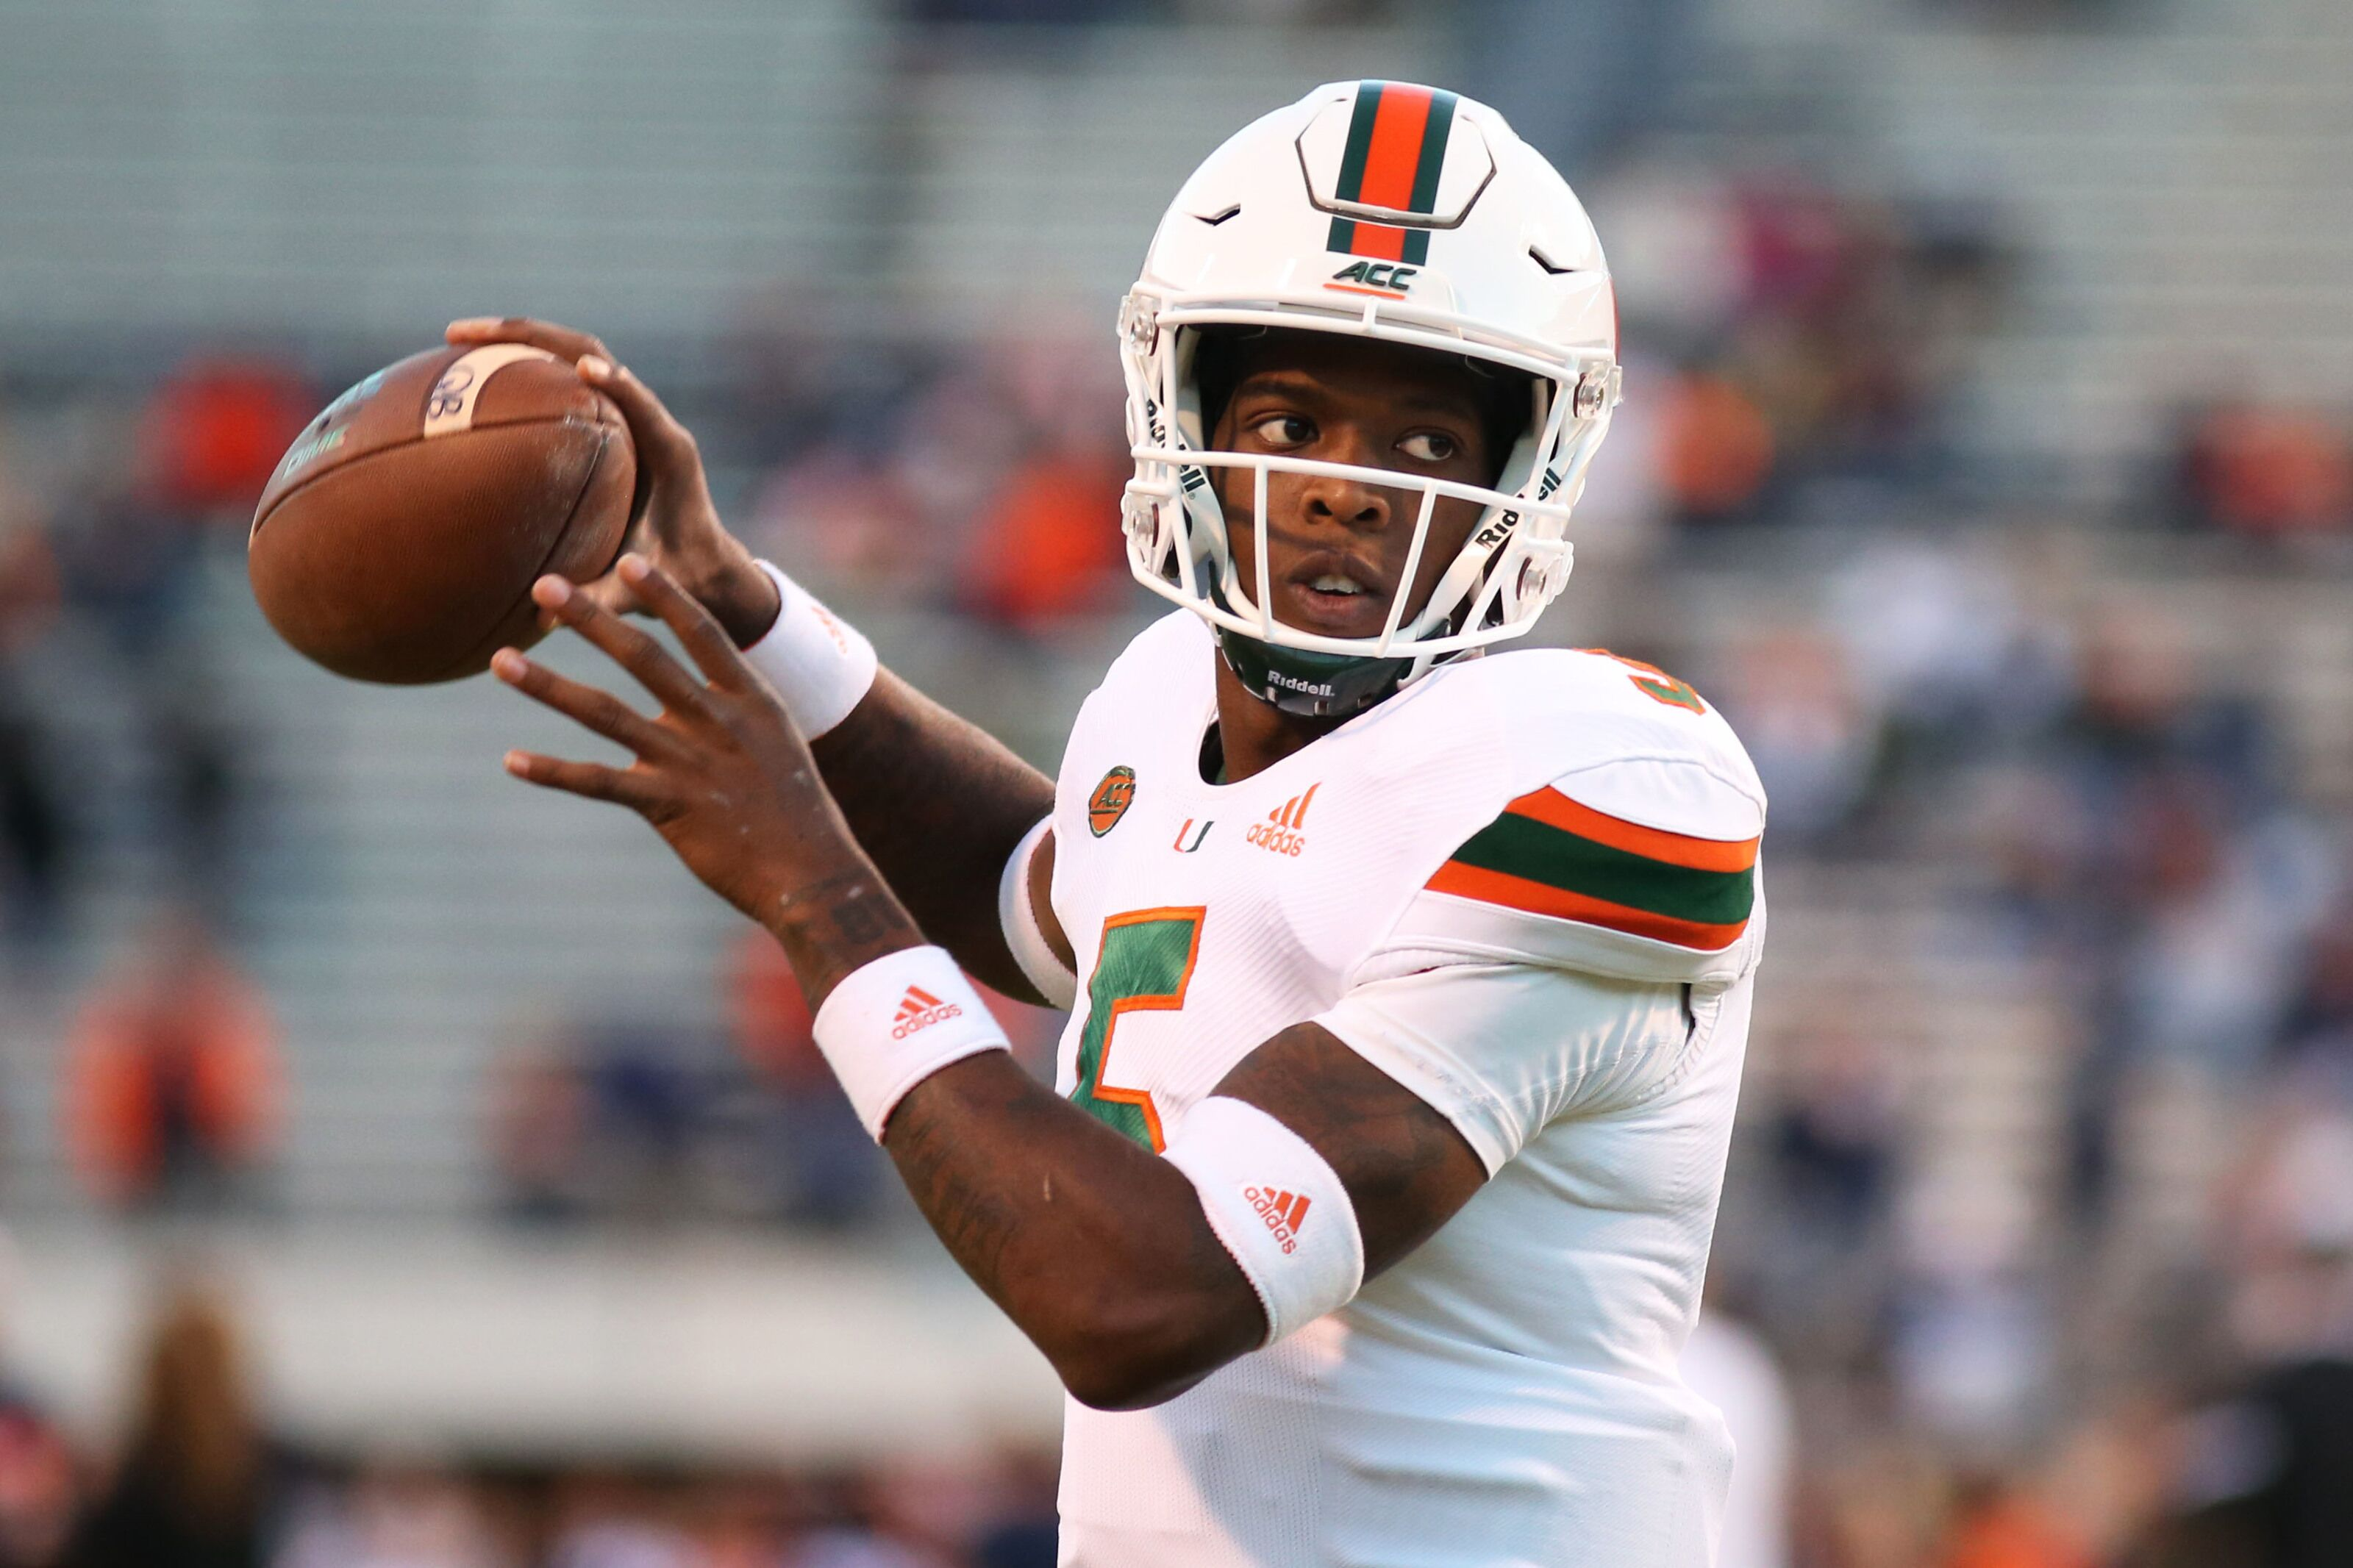 Talent at quarterback for Miami football team is reason for optimism